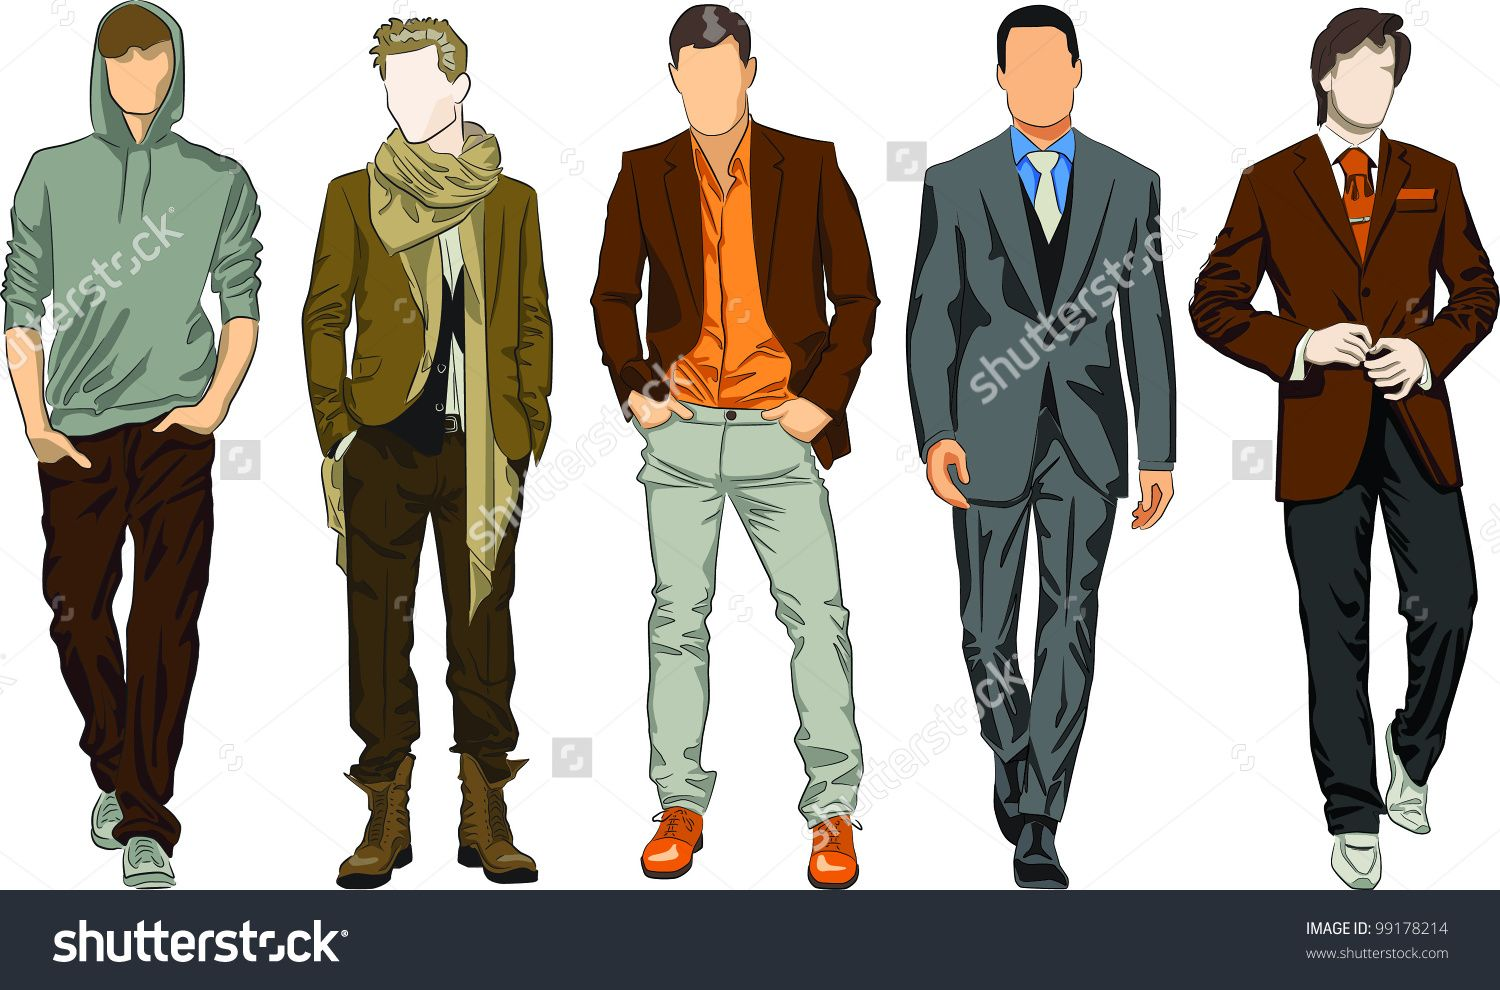 Menswear clipart transparent men\'s clothing descriptions clipart - Google Search | ESL Topics ... transparent